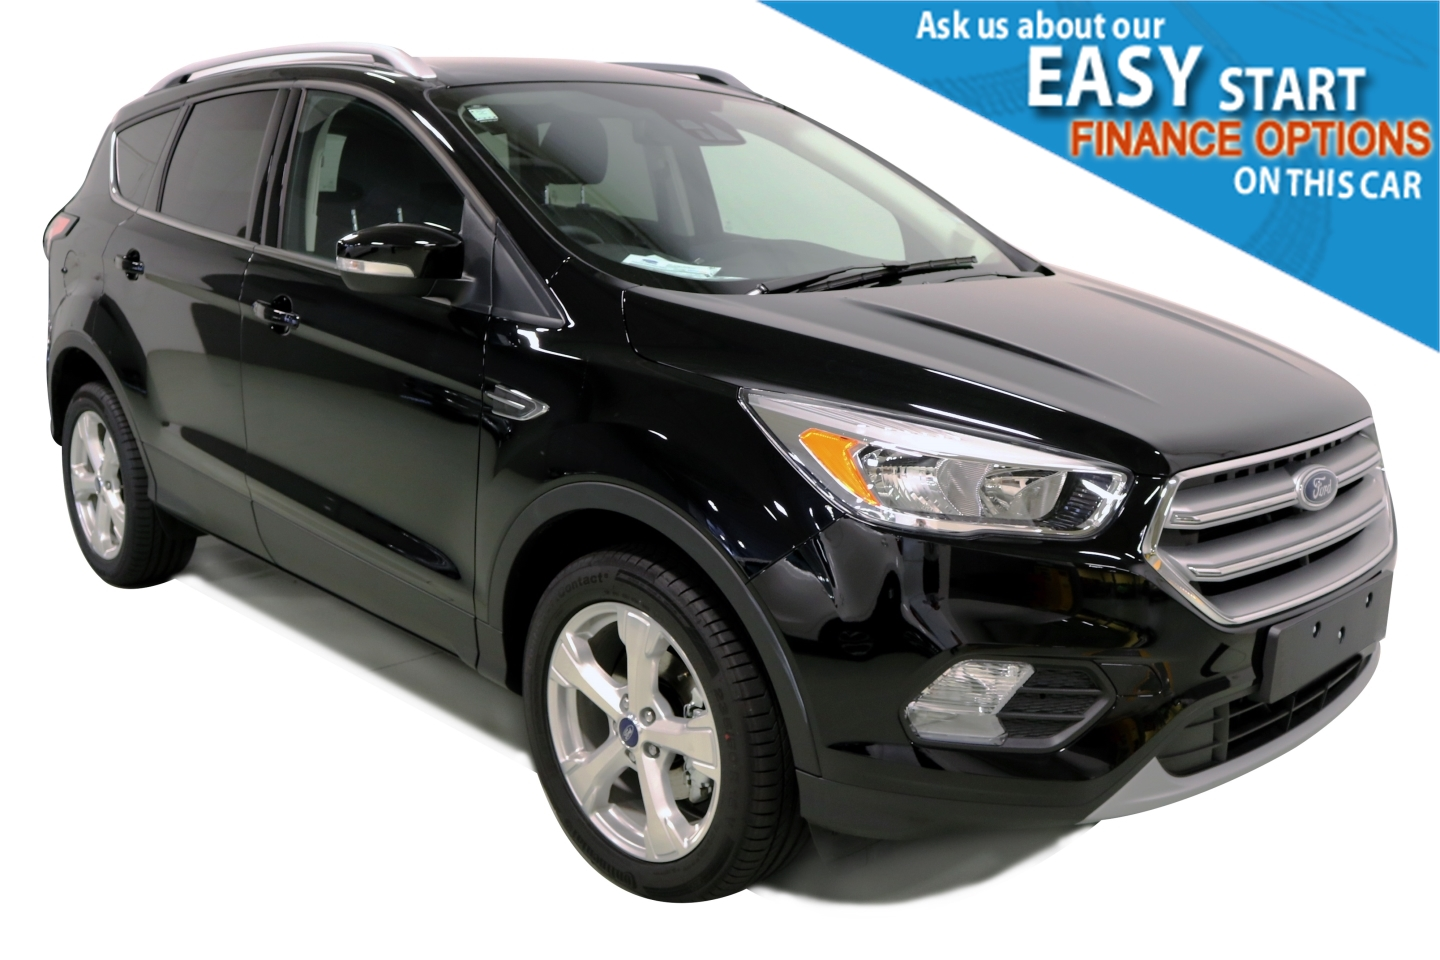 ford escape trend awd diesel 2 0 turbo 5 door suv 2017 john andrew new used and. Black Bedroom Furniture Sets. Home Design Ideas